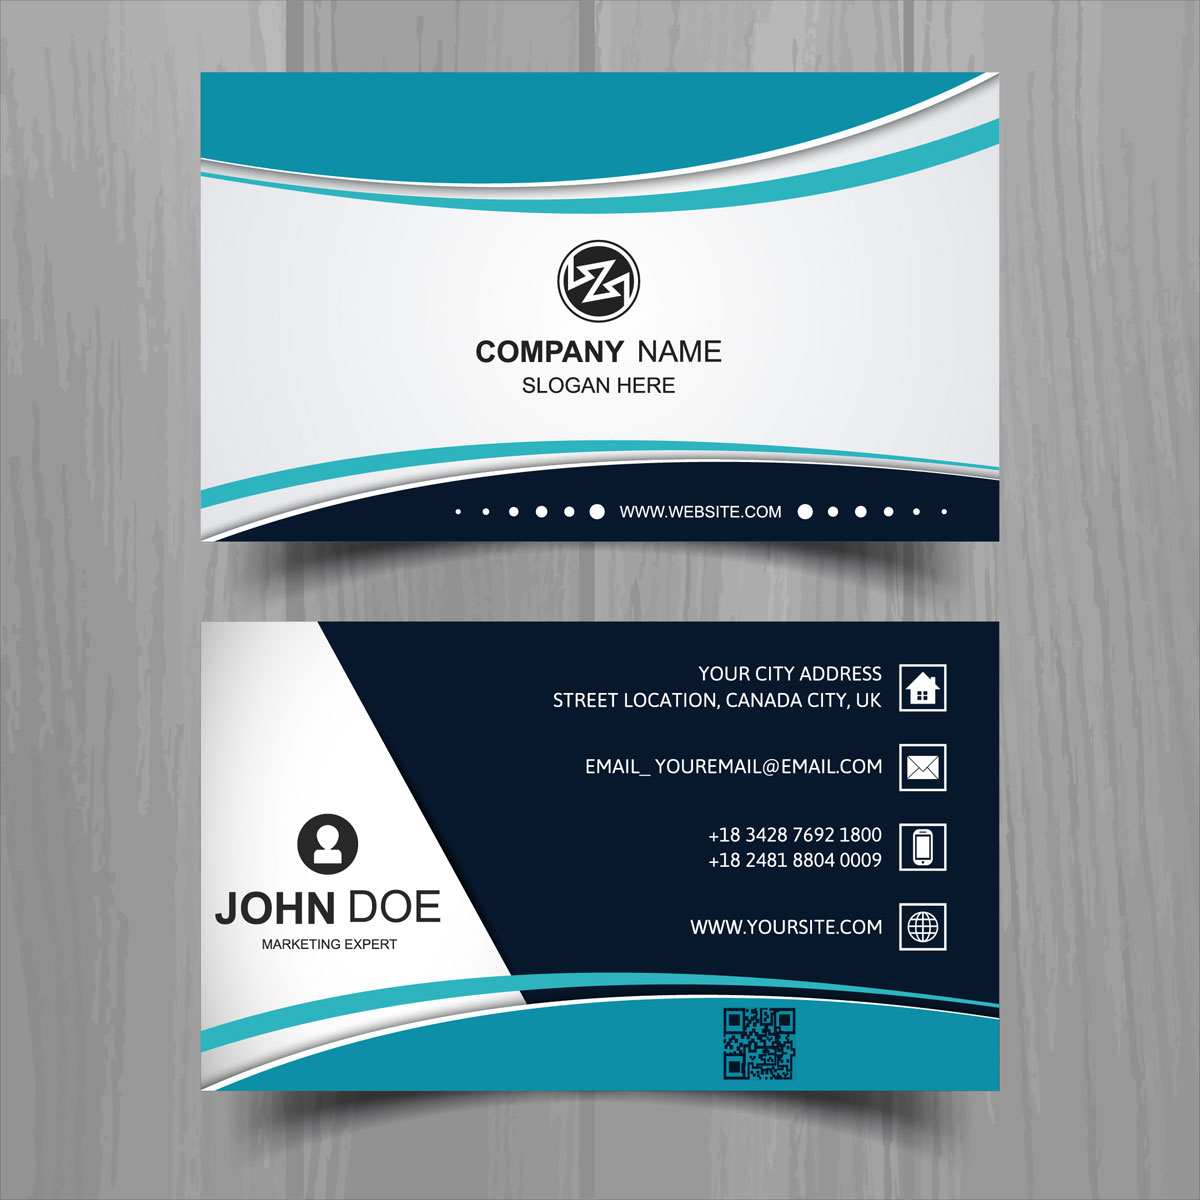 Design 3 unique stylish business cards with psd source for 5 design 3 unique stylish business cards with psd source colourmoves